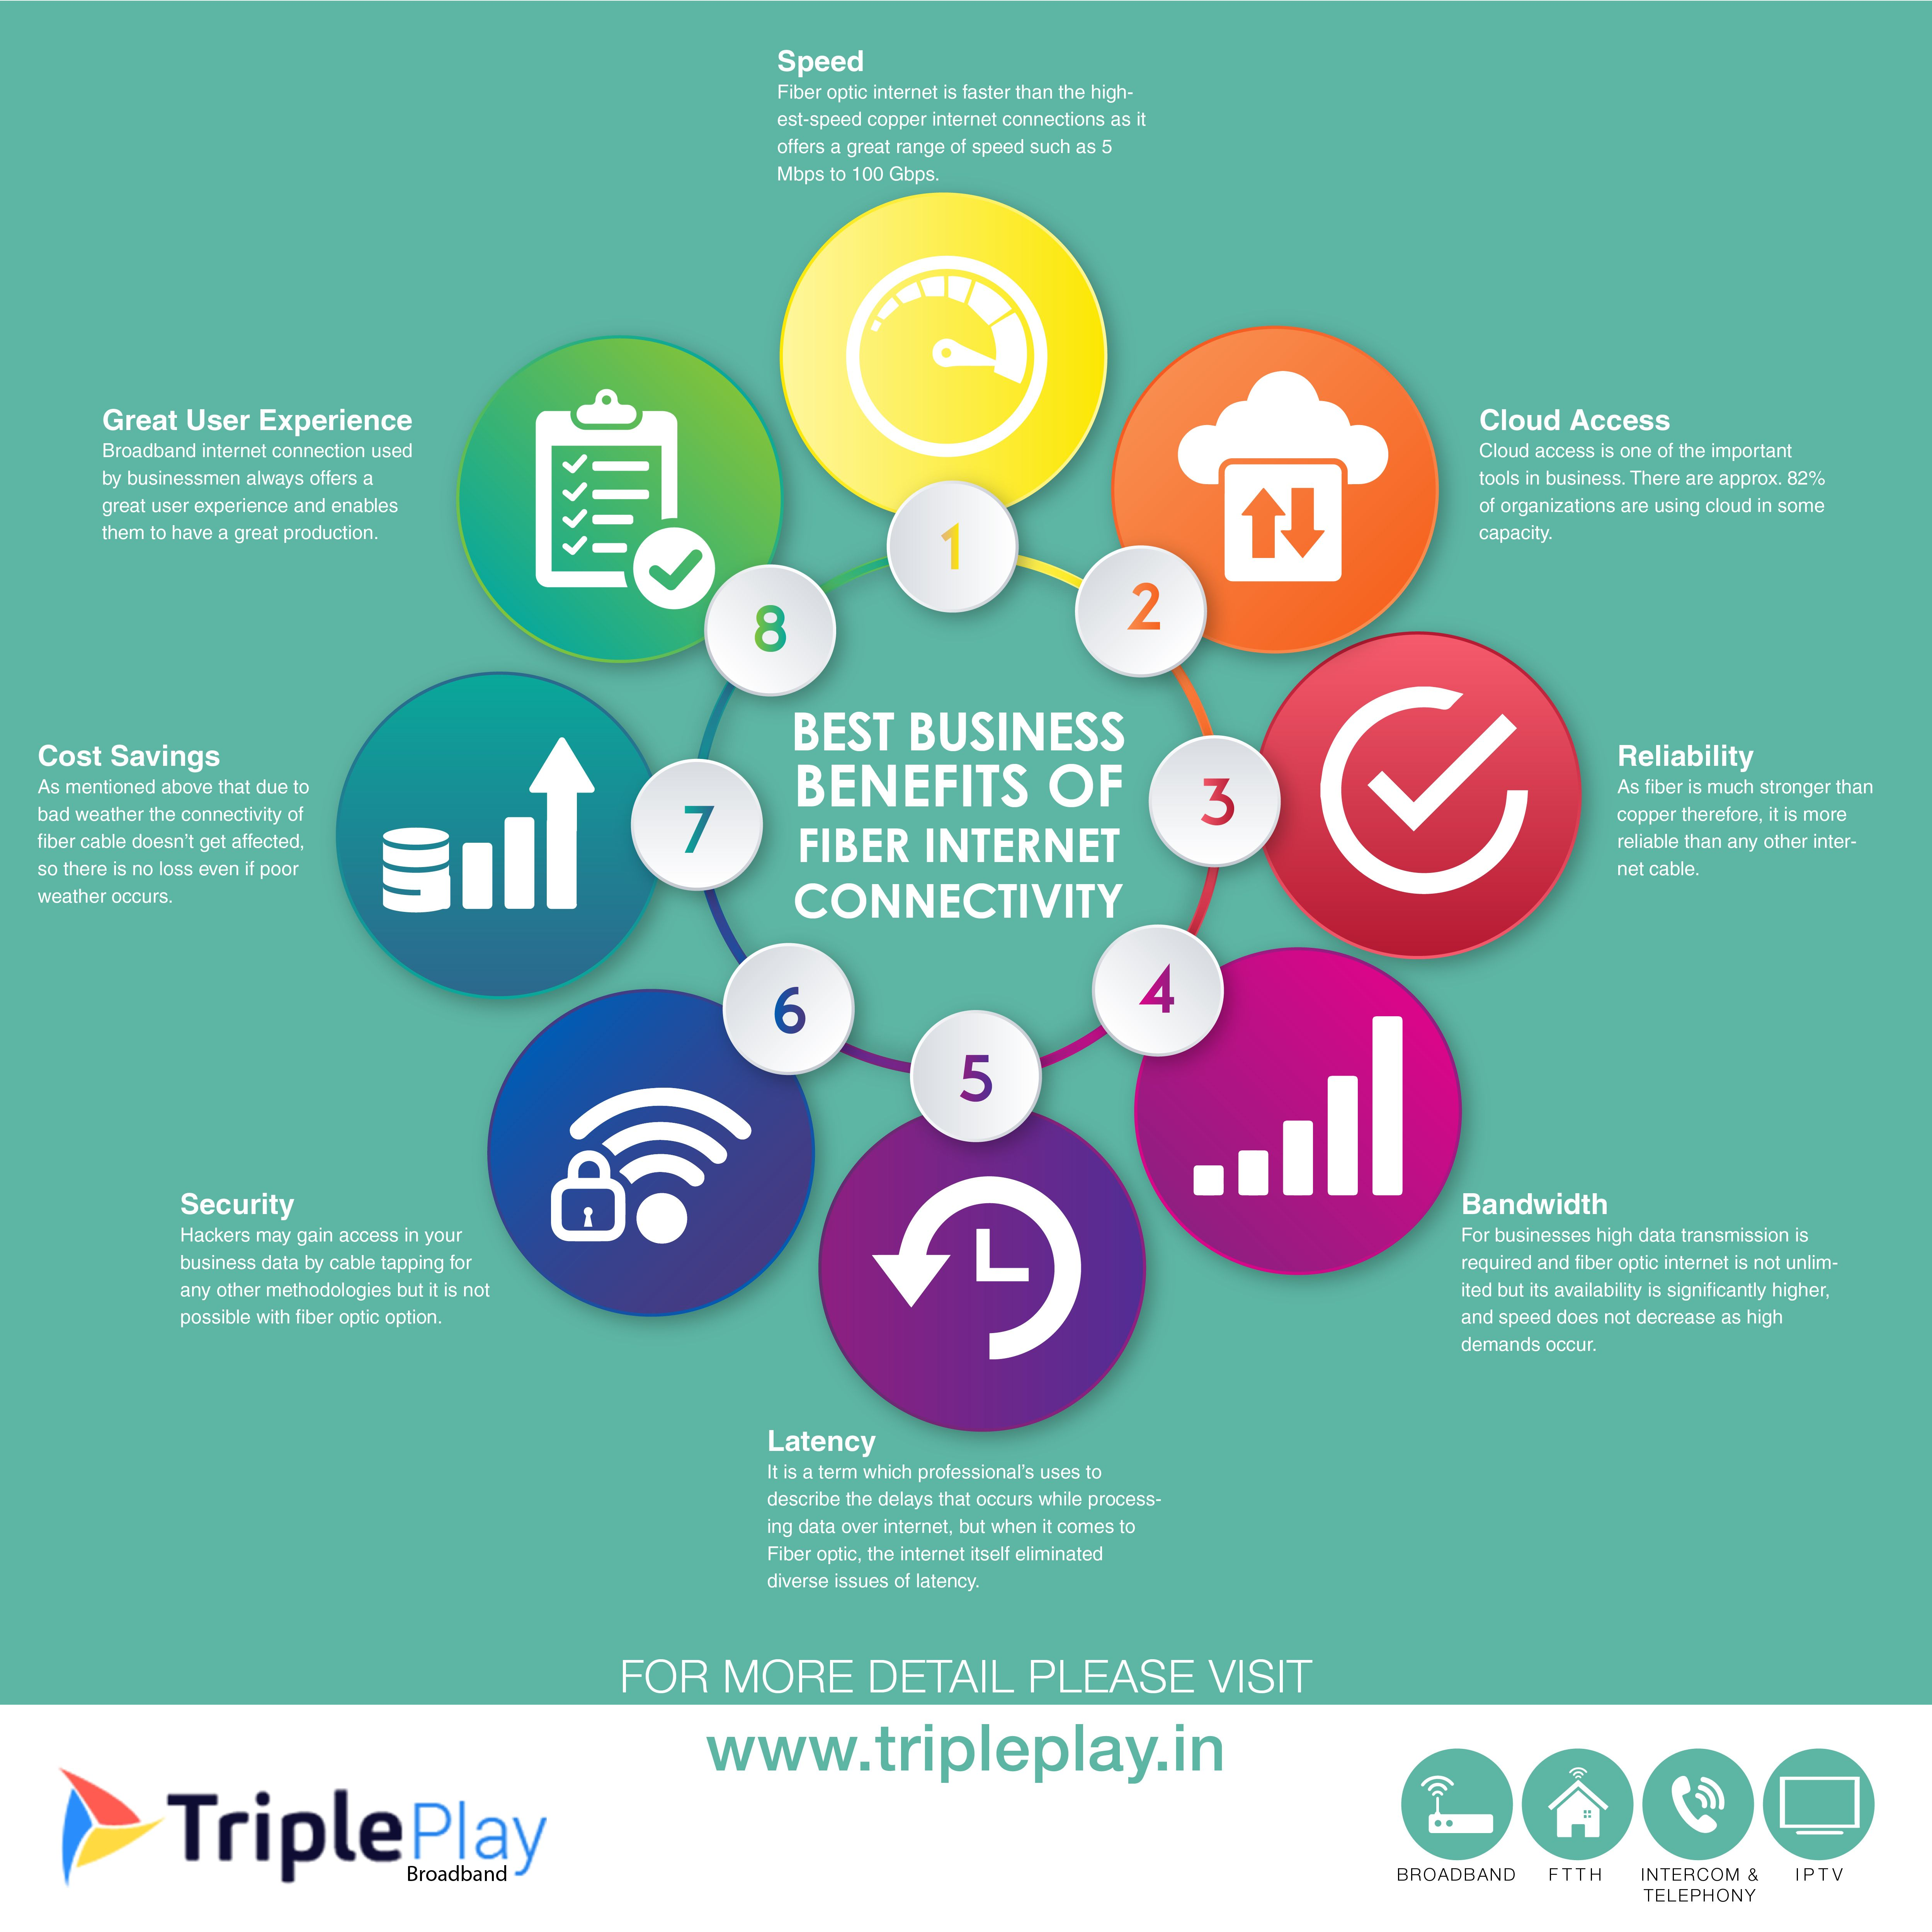 Tripleplay Is Very Well Know For Their Customer Services And Quality Service So You Can Get Broadband Service Fiber Internet Internet Plans Broadband Services